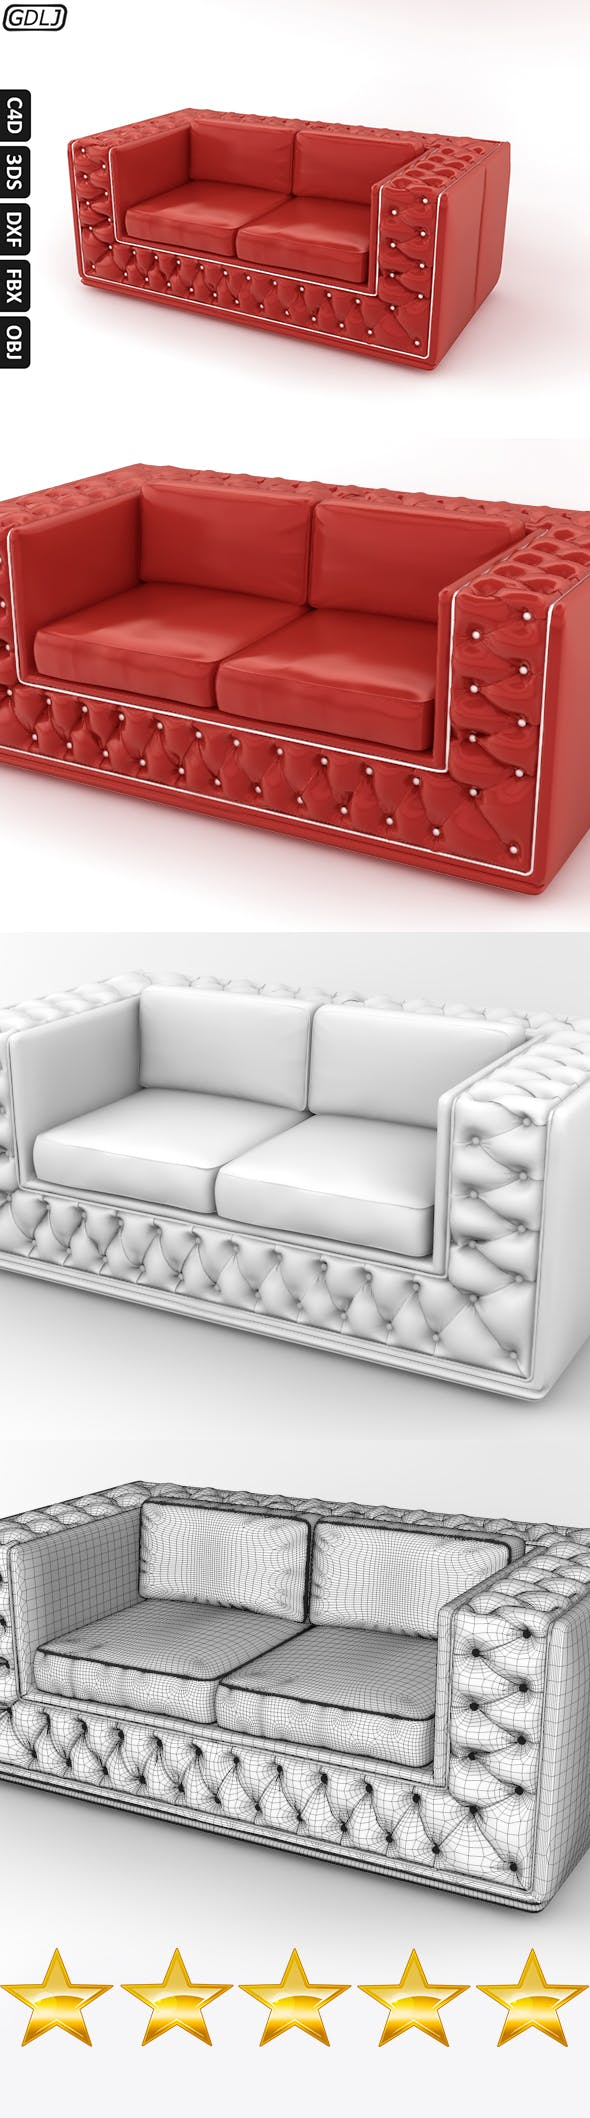 Fashionable leather sofa Red - 3DOcean Item for Sale